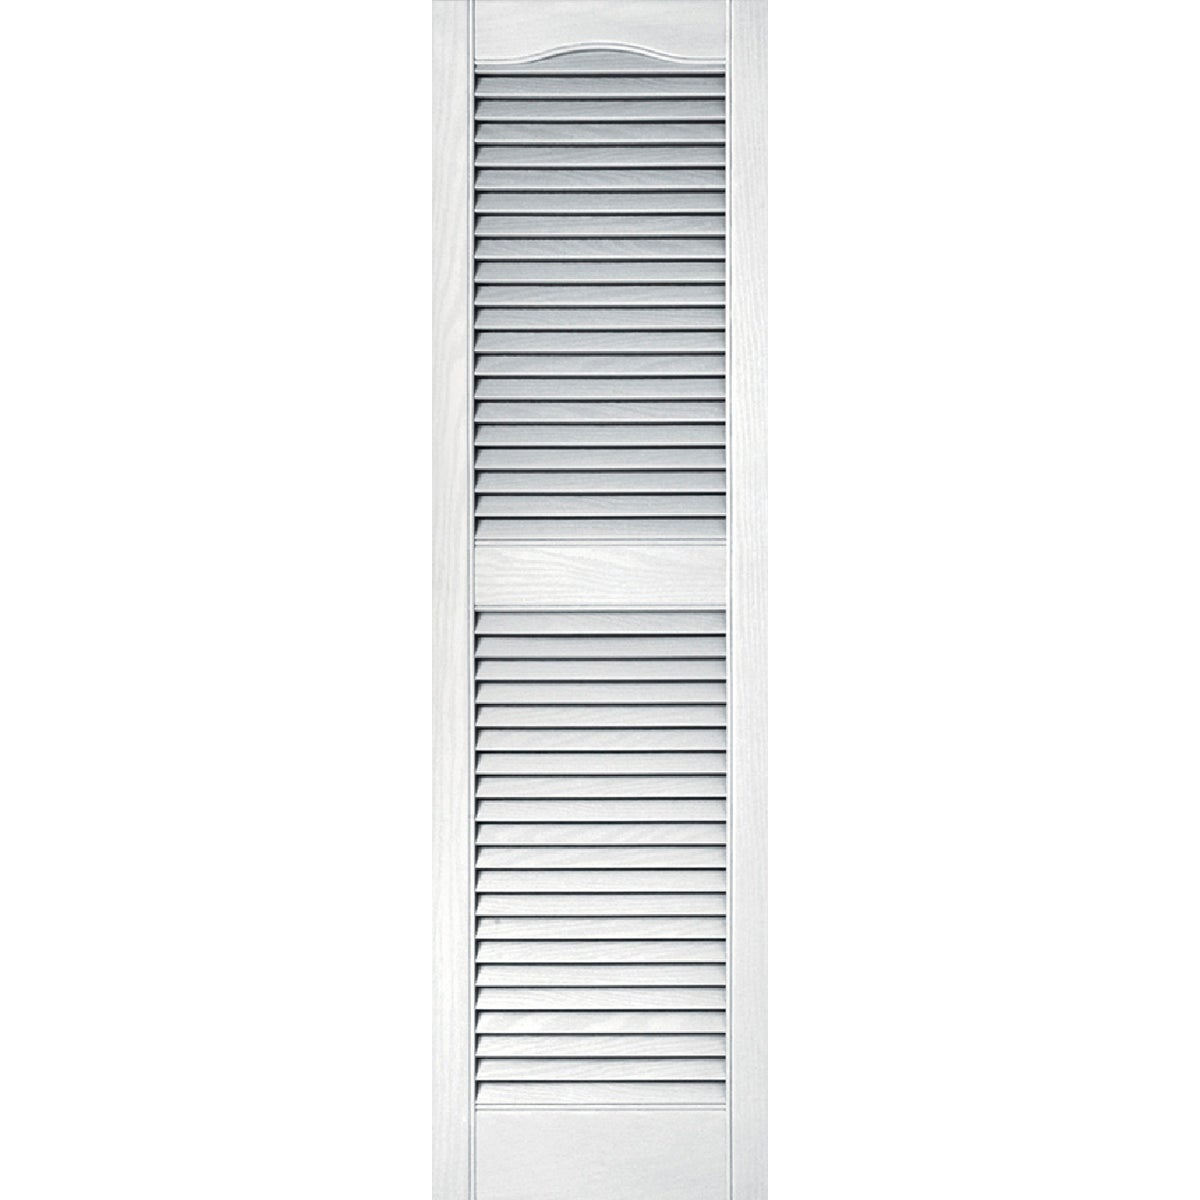 15X52 WHT LOUVER SHUTTER - 020140052001 by The Tapco Group